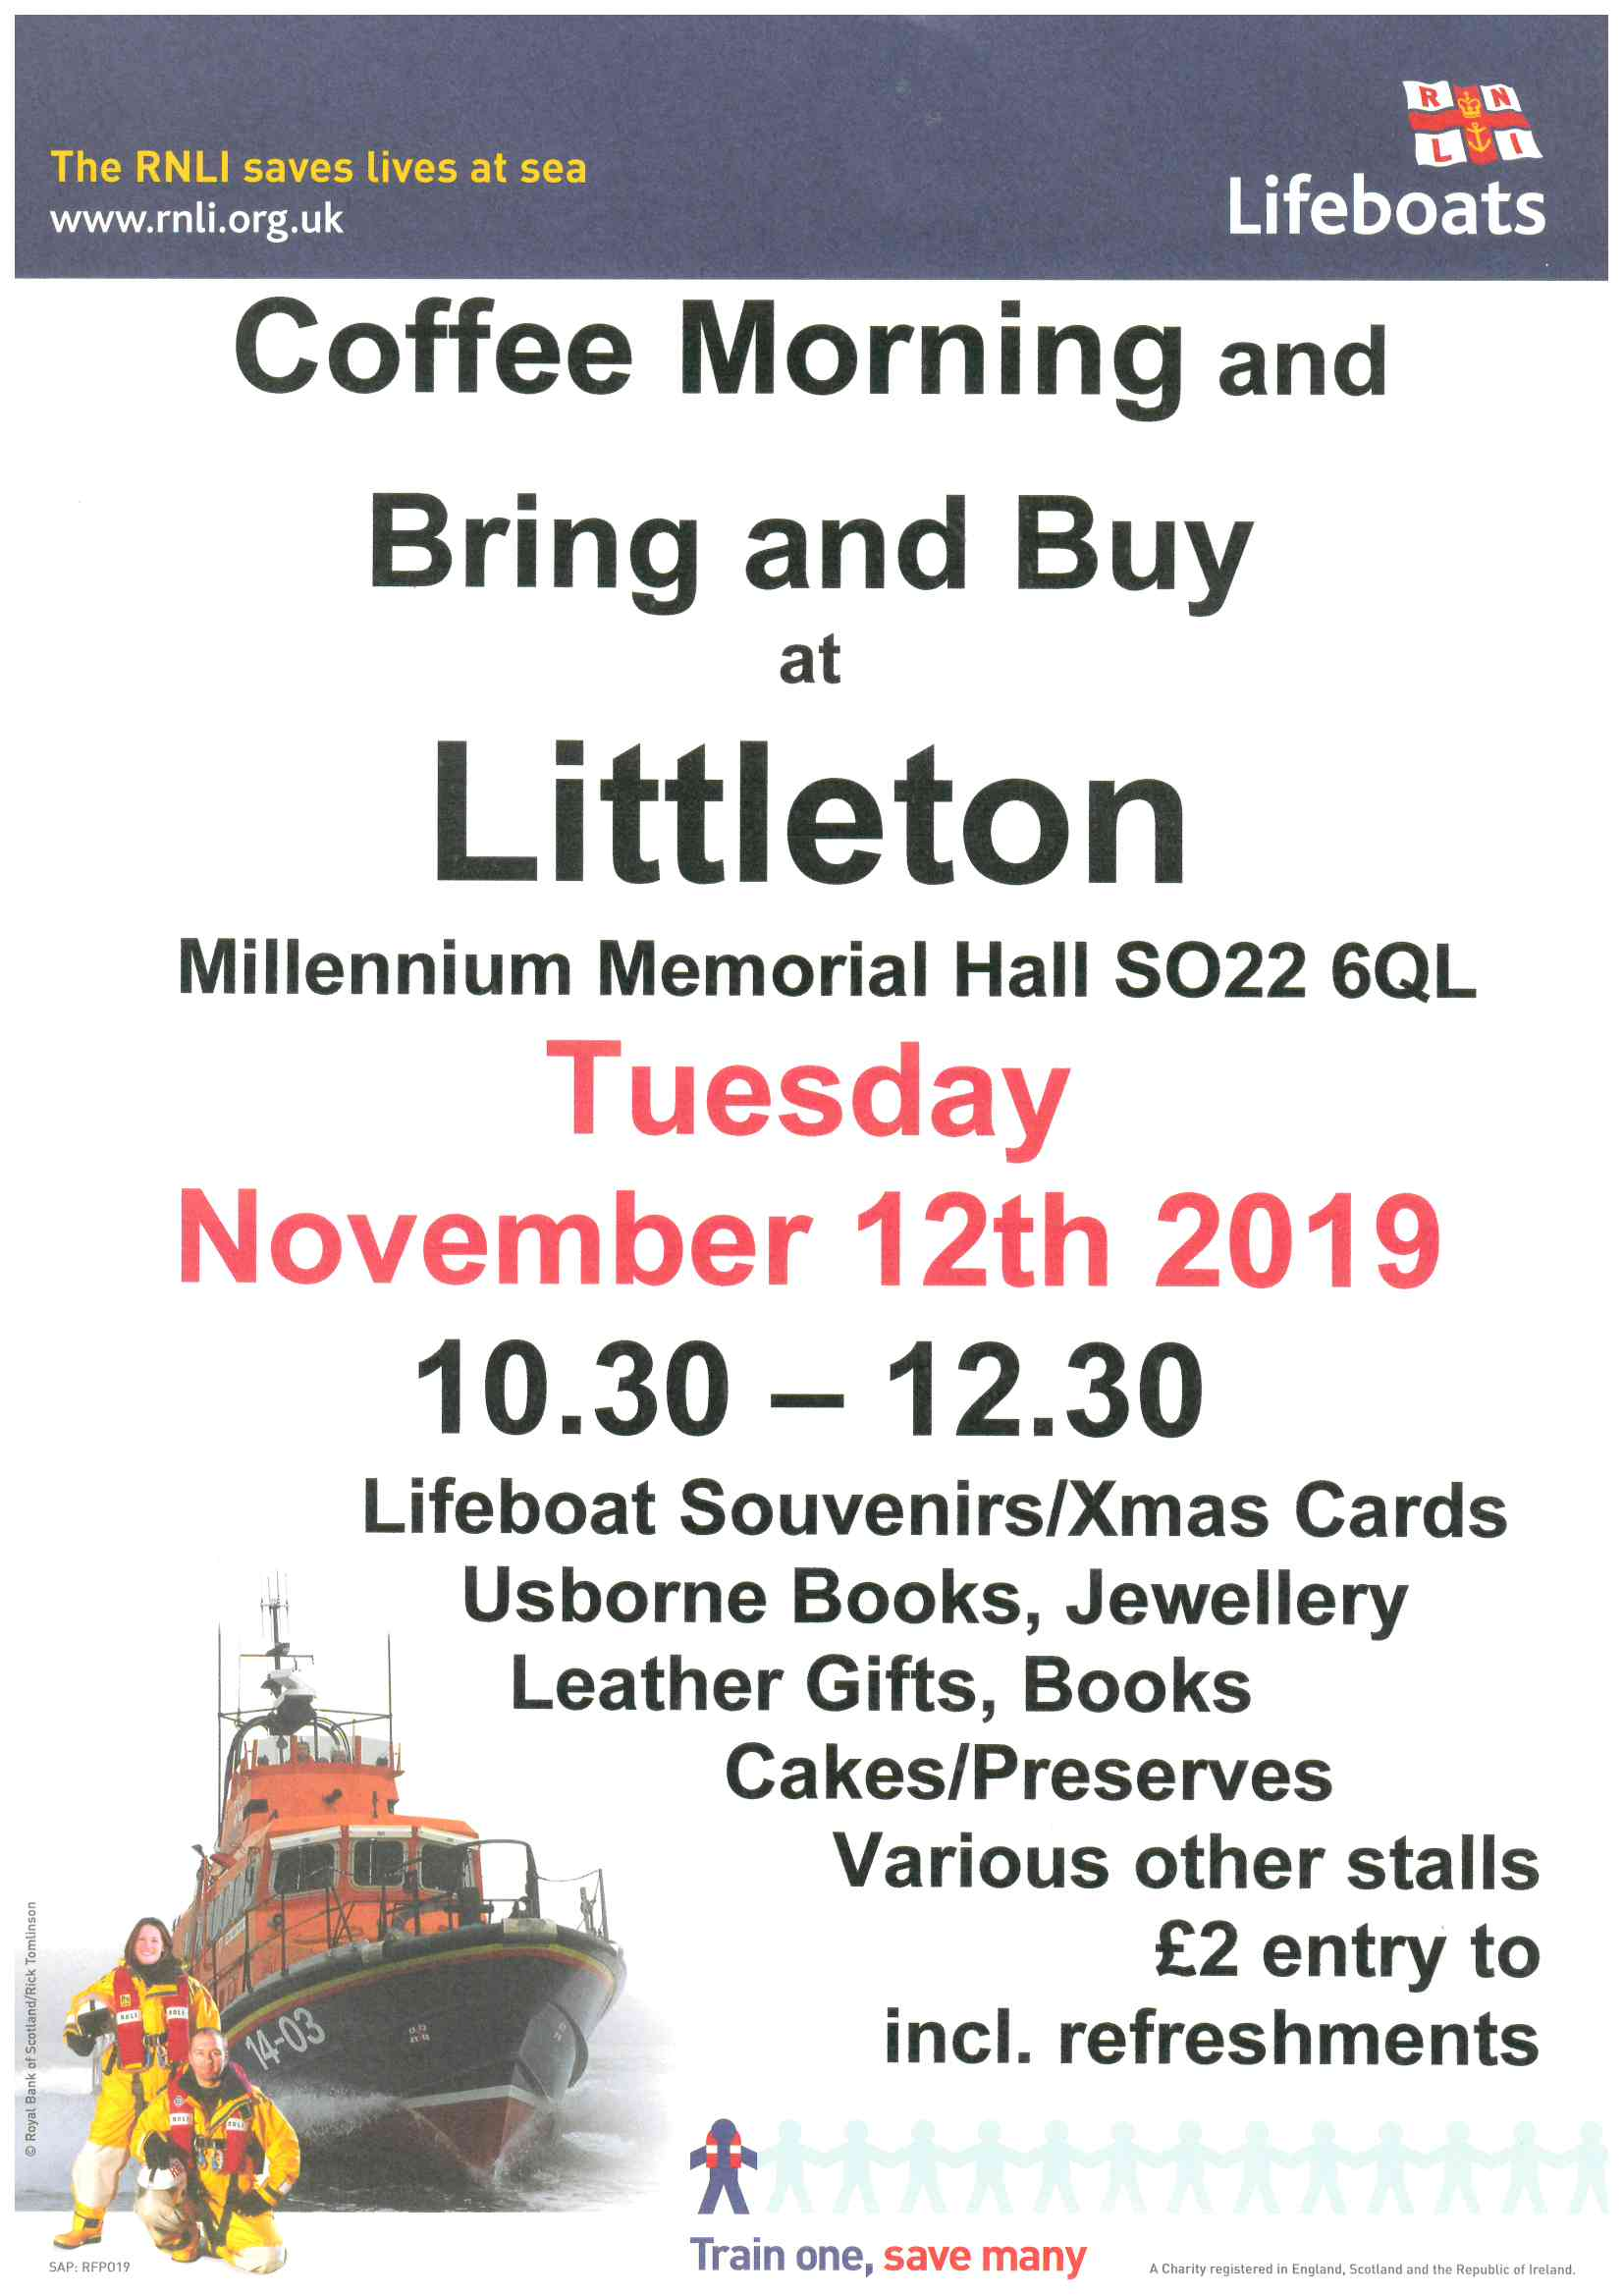 Details of Coffee Morning and Bring and Buy in aid of RNLI with picture of lifeboat.